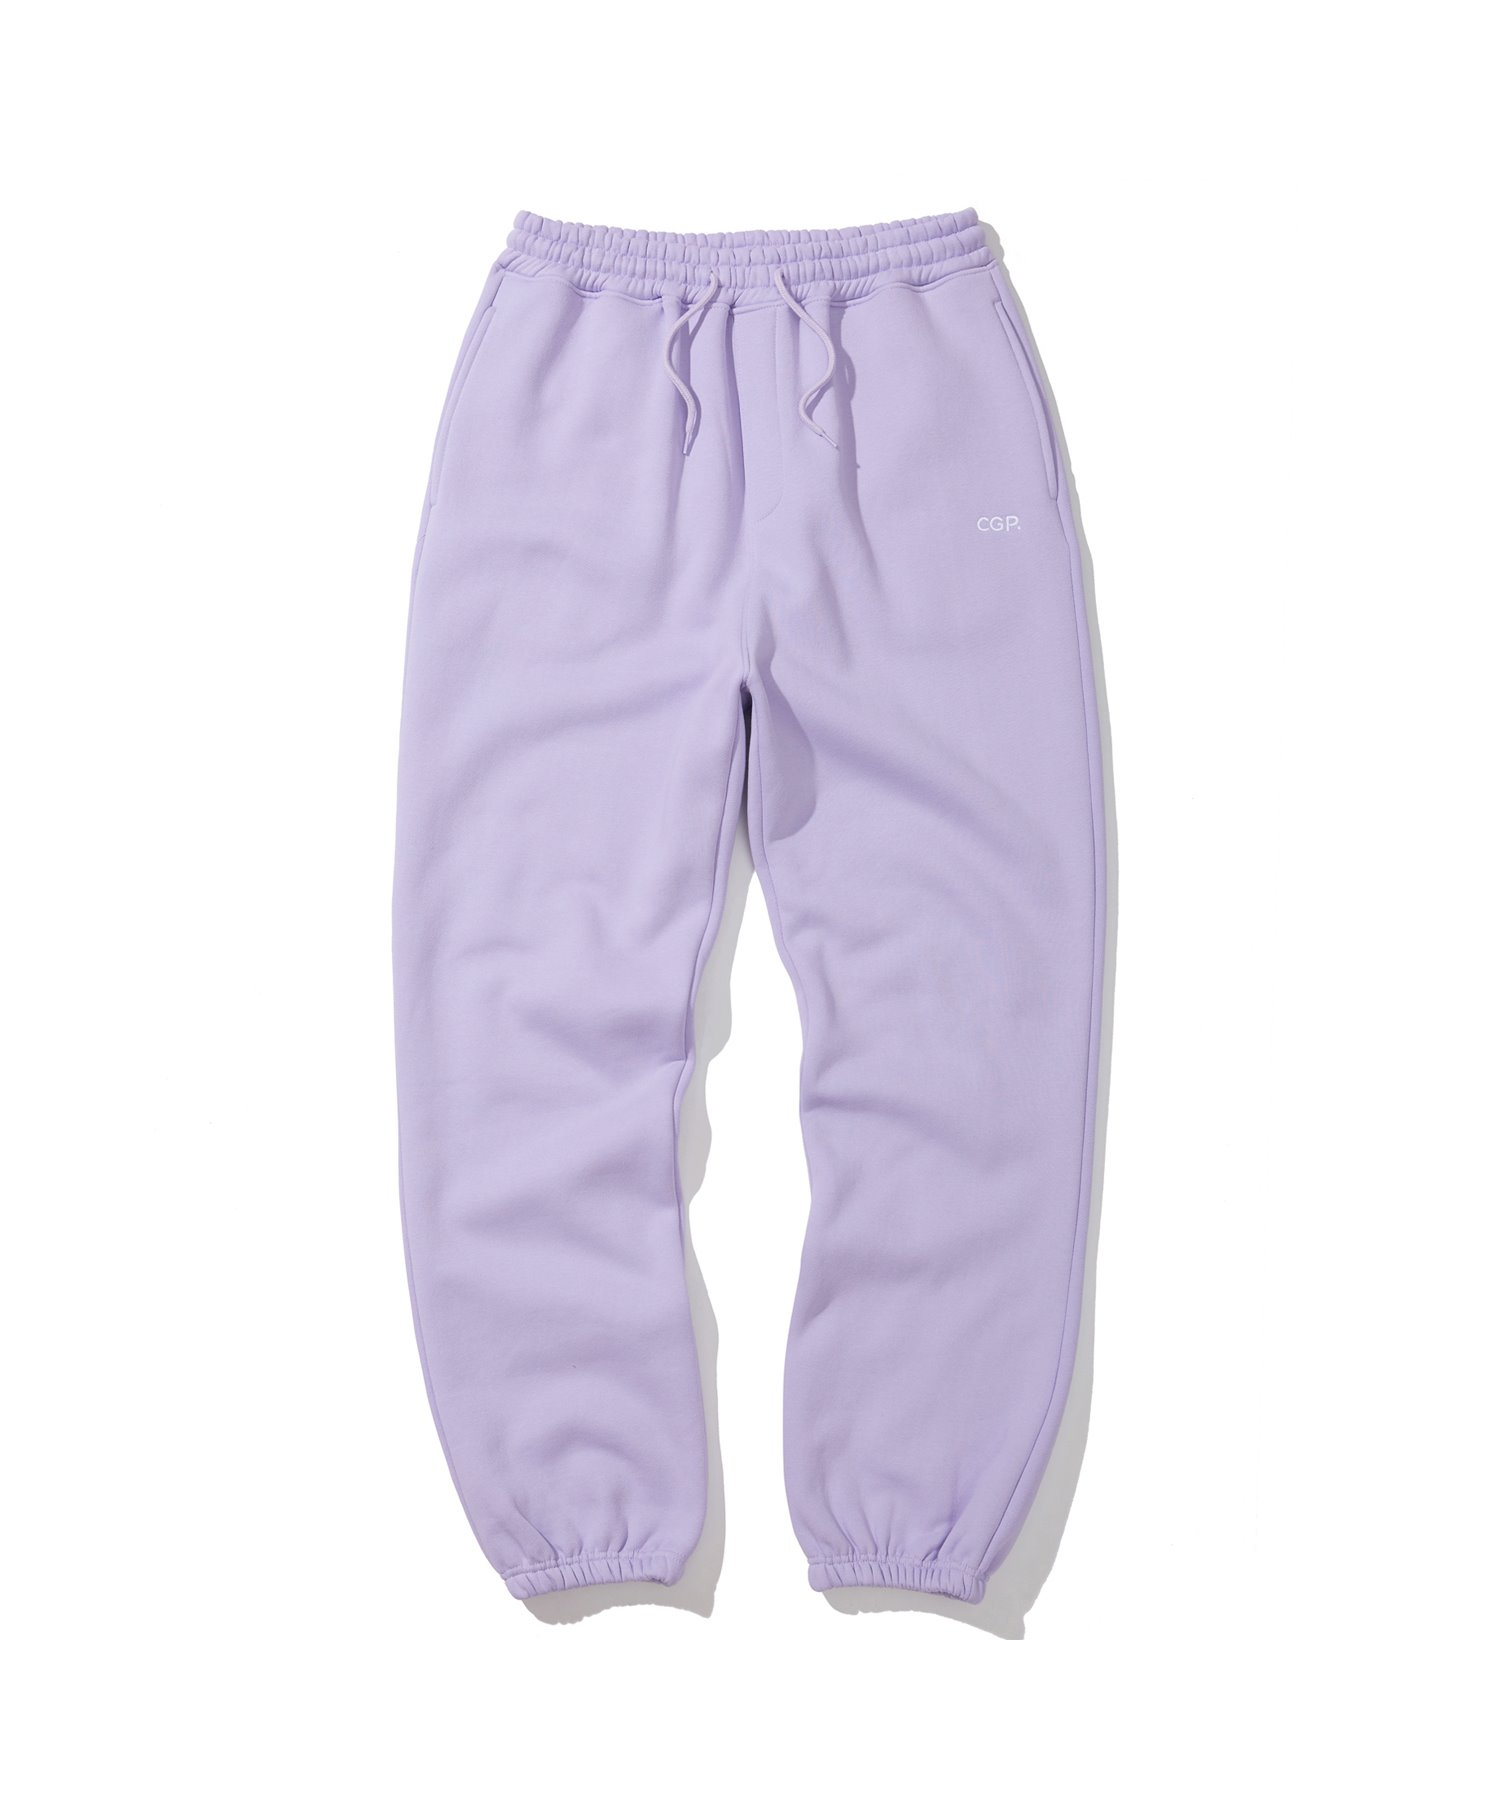 CGP BASIC TRAINING PANTS - LIL